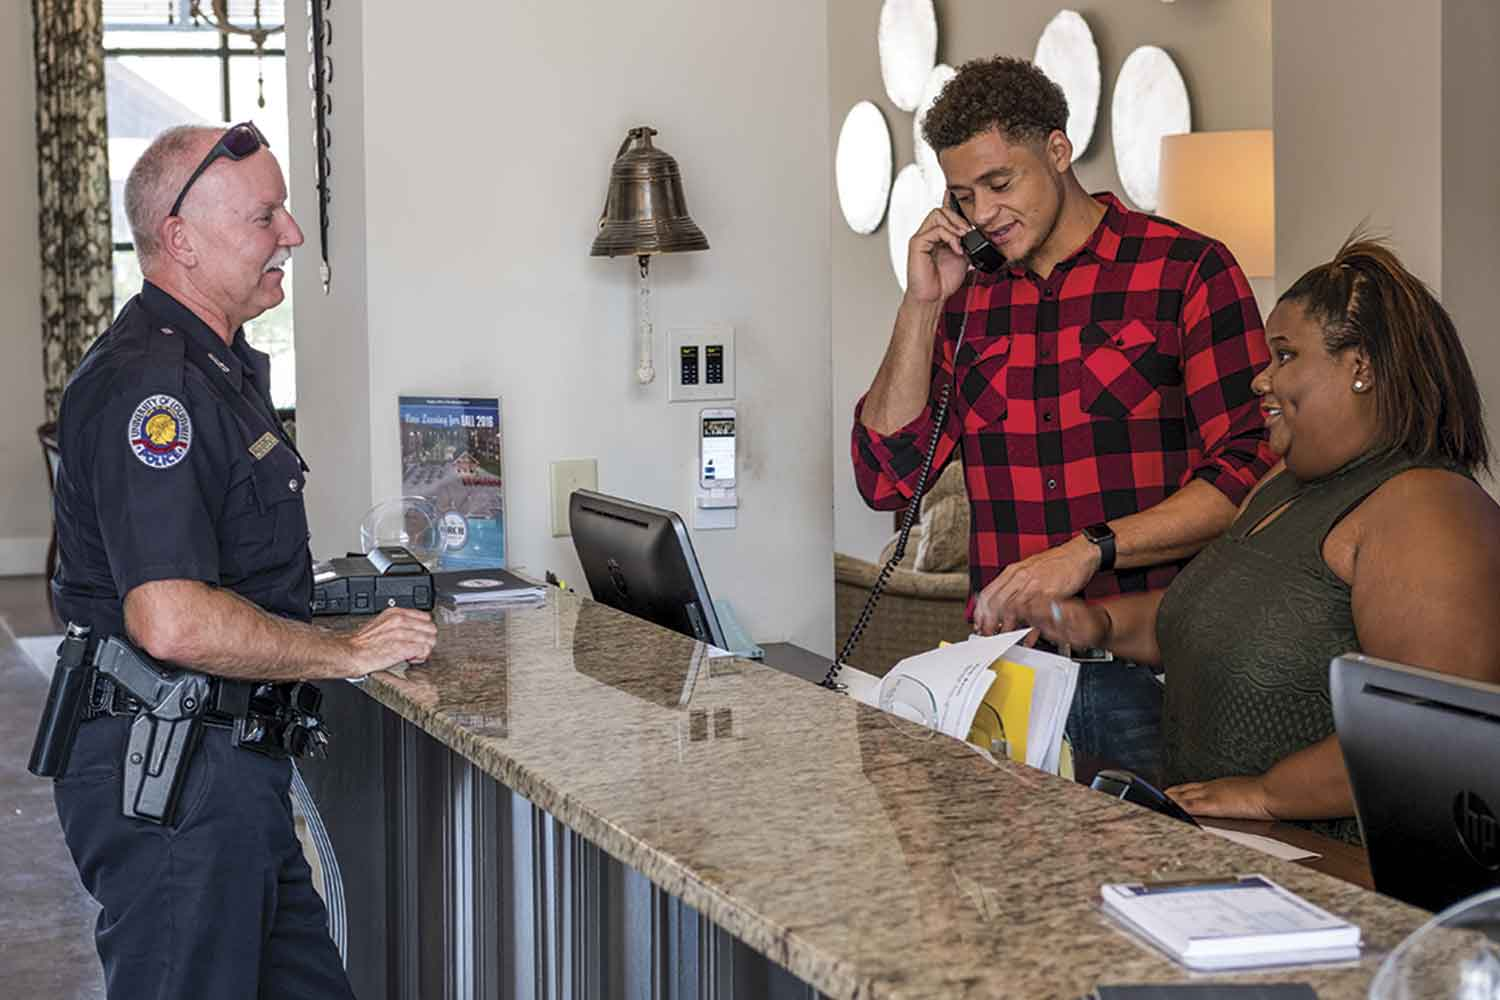 UofL Police Resource Officer Dion Dodson checks in with one of seven affiliate residence complexes near UofL's campus. Though geared toward university students, these affiliate locations also contain non-student residents and consume the bulk of Dodson's assigned area. (Photo by Jim Robertson)